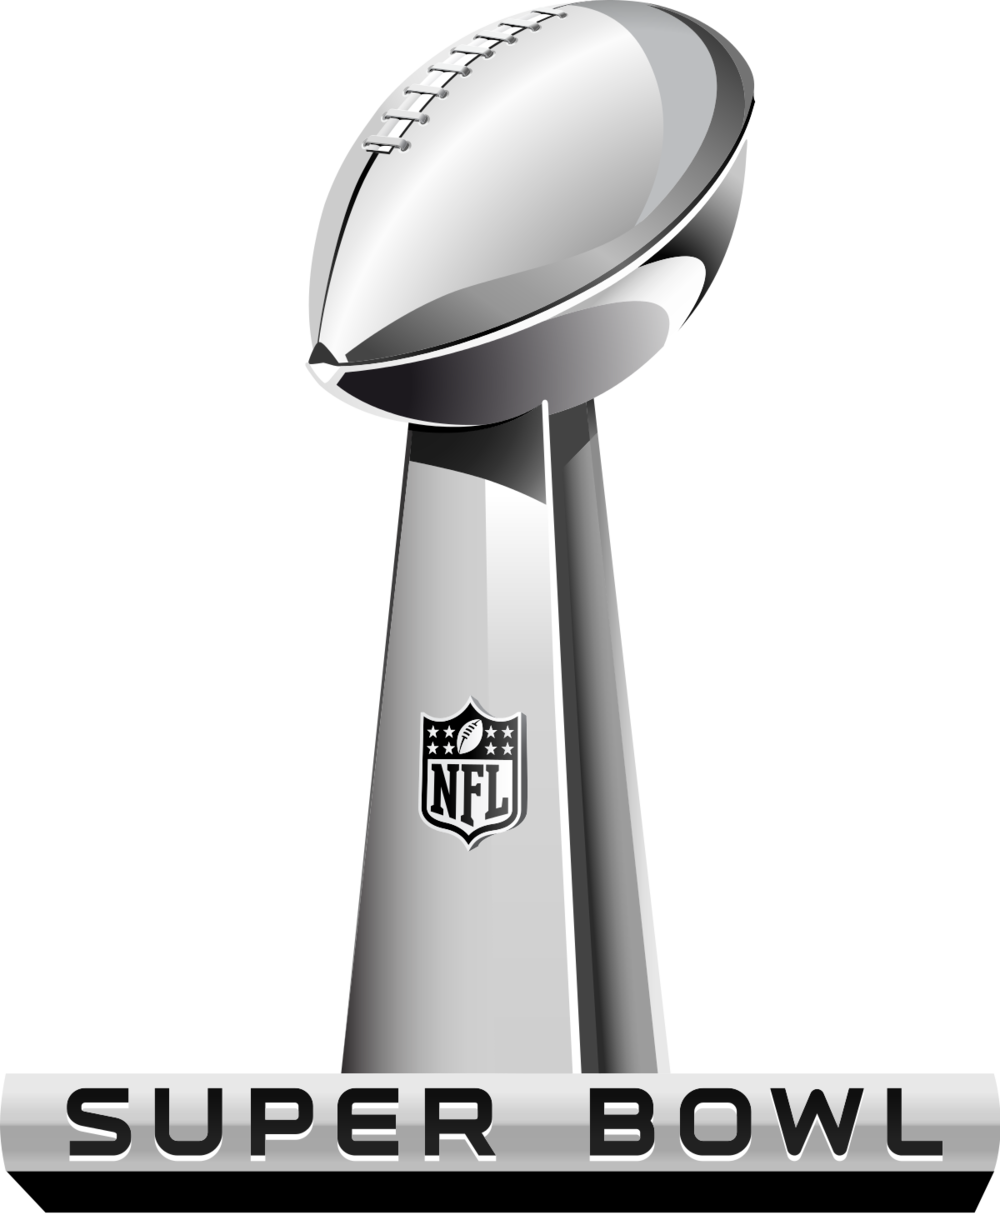 Super Bowl 1.png